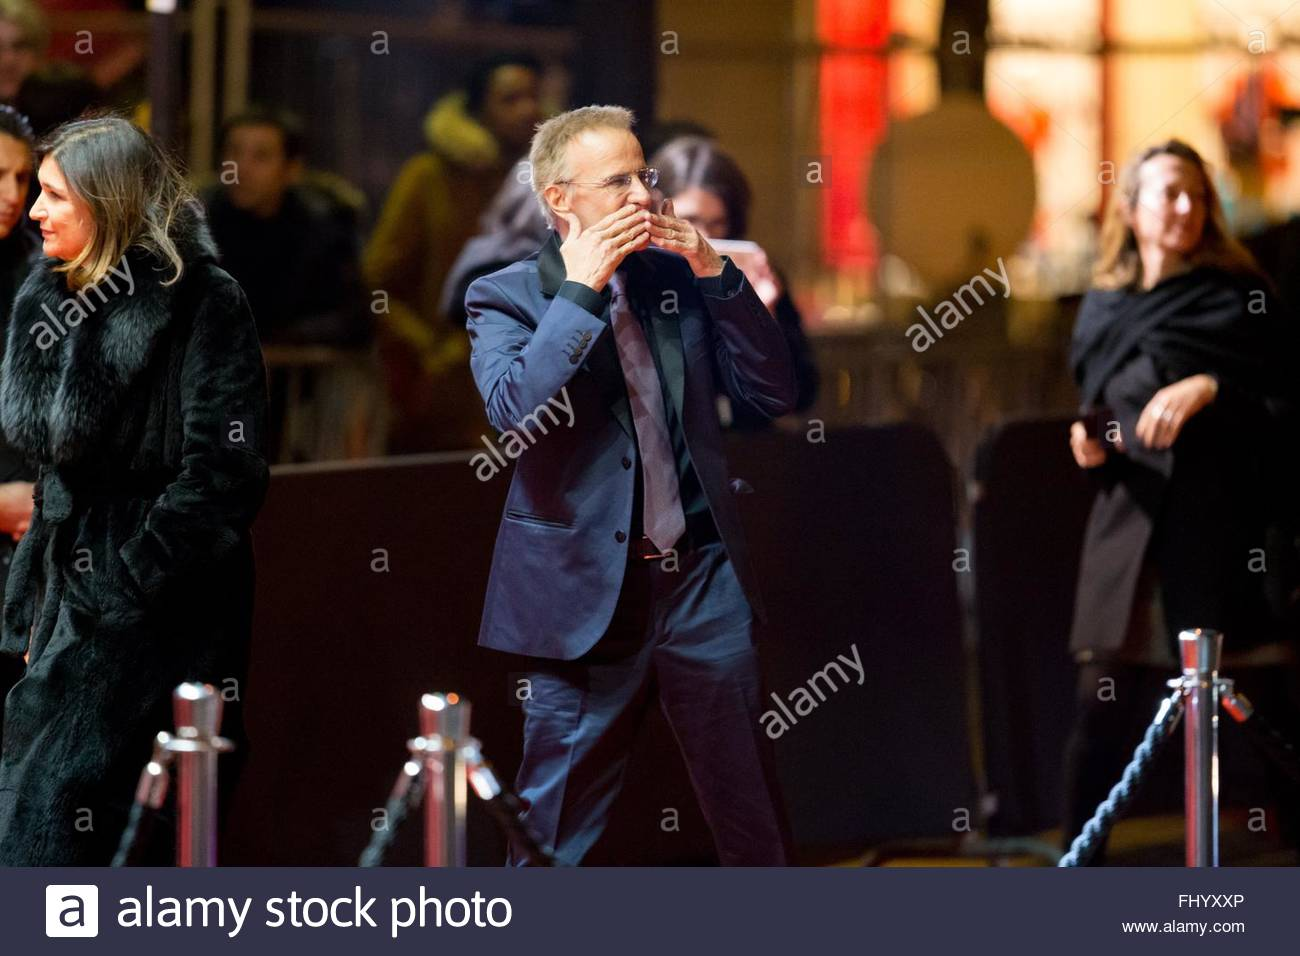 Paris, France. February 26th, 2016. FRANCE, Paris: French actor Christophe Lambert walks on the red carpet of the Stock Photo